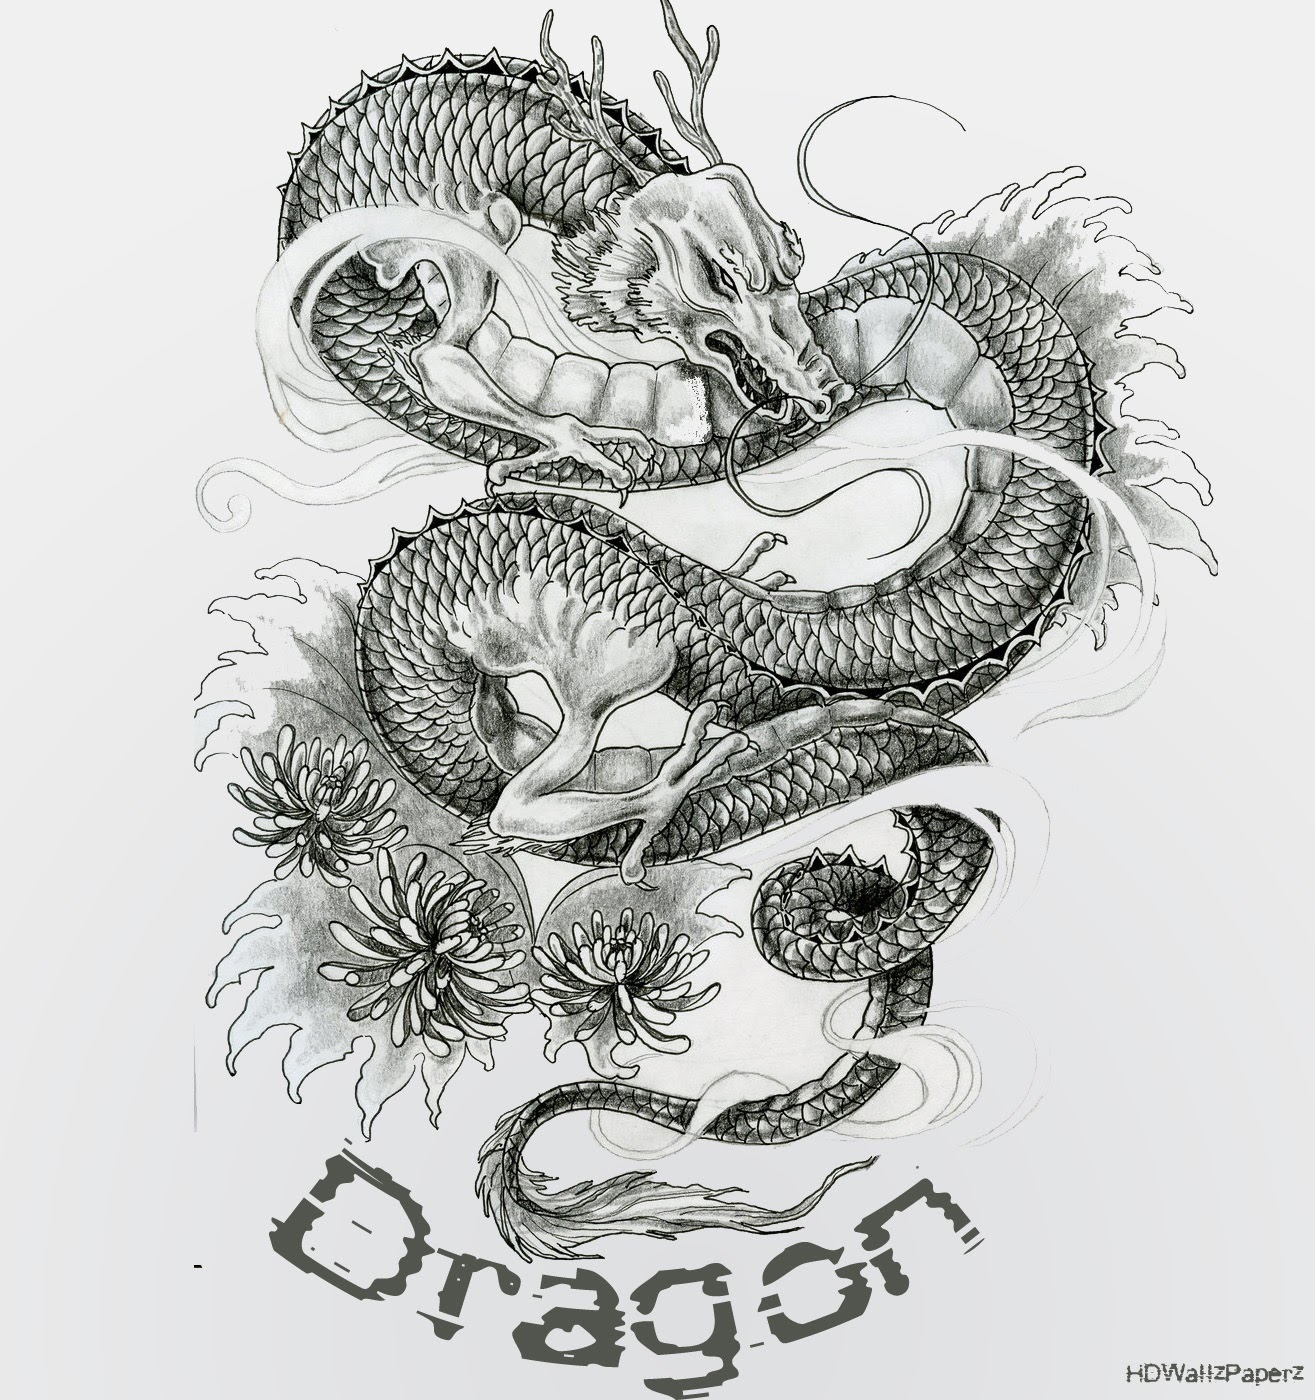 Hd wallpaper tattoo - Dragon Tattoo Hd Wallpaper Fire Dragon Hd Wallpaper White Dragon